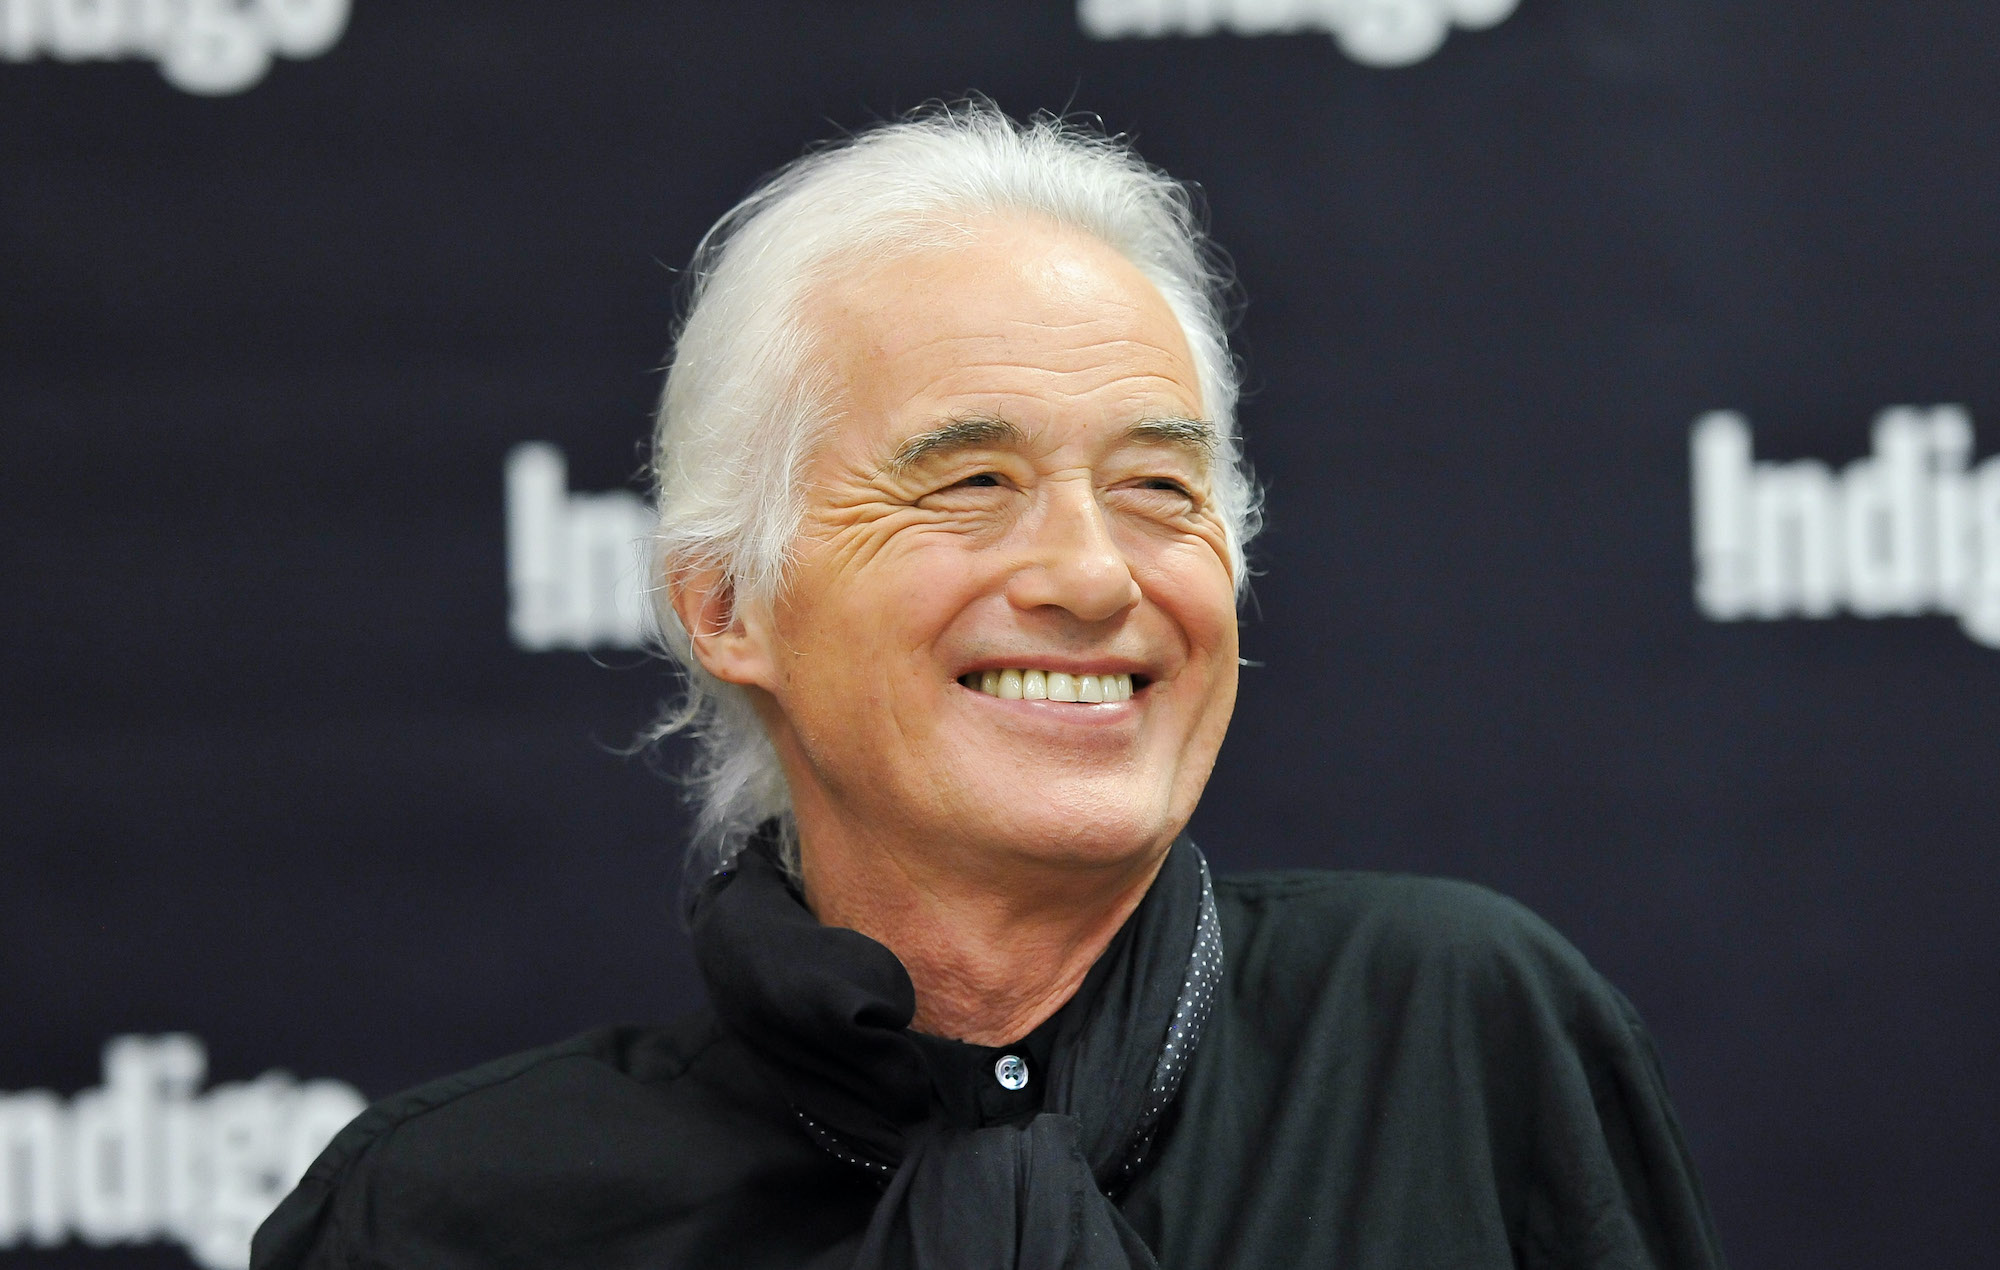 Watch the trailer for Jimmy Page's 'The Anthology' book